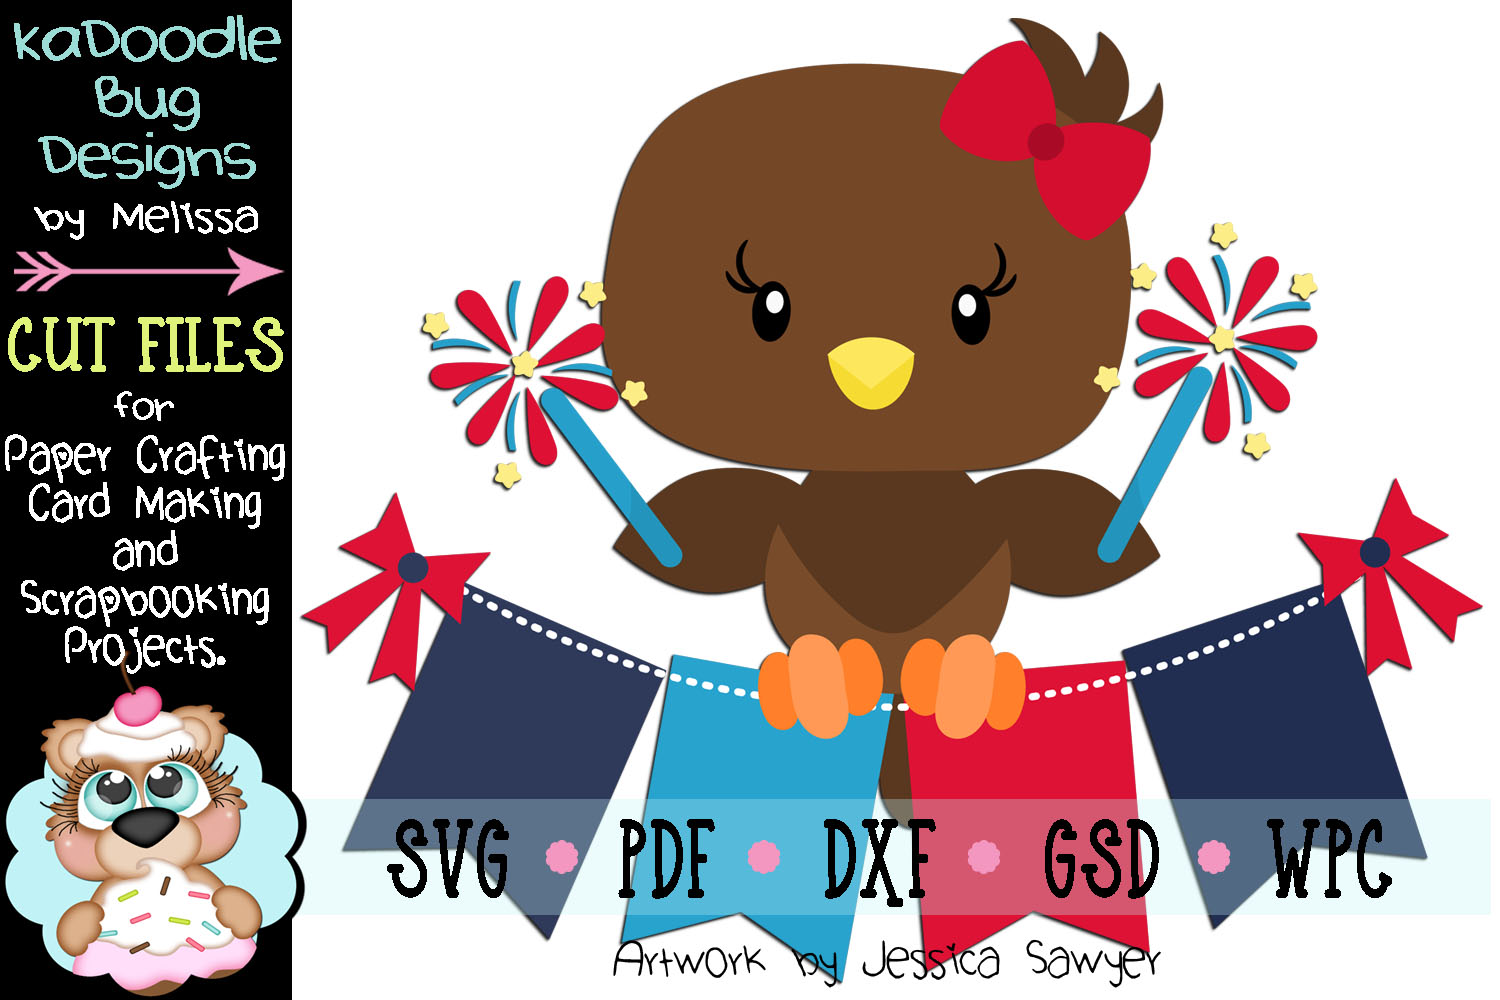 4th of July Sparkler Eagle Cut File - SVG PDF DXF GSD WPC example image 1